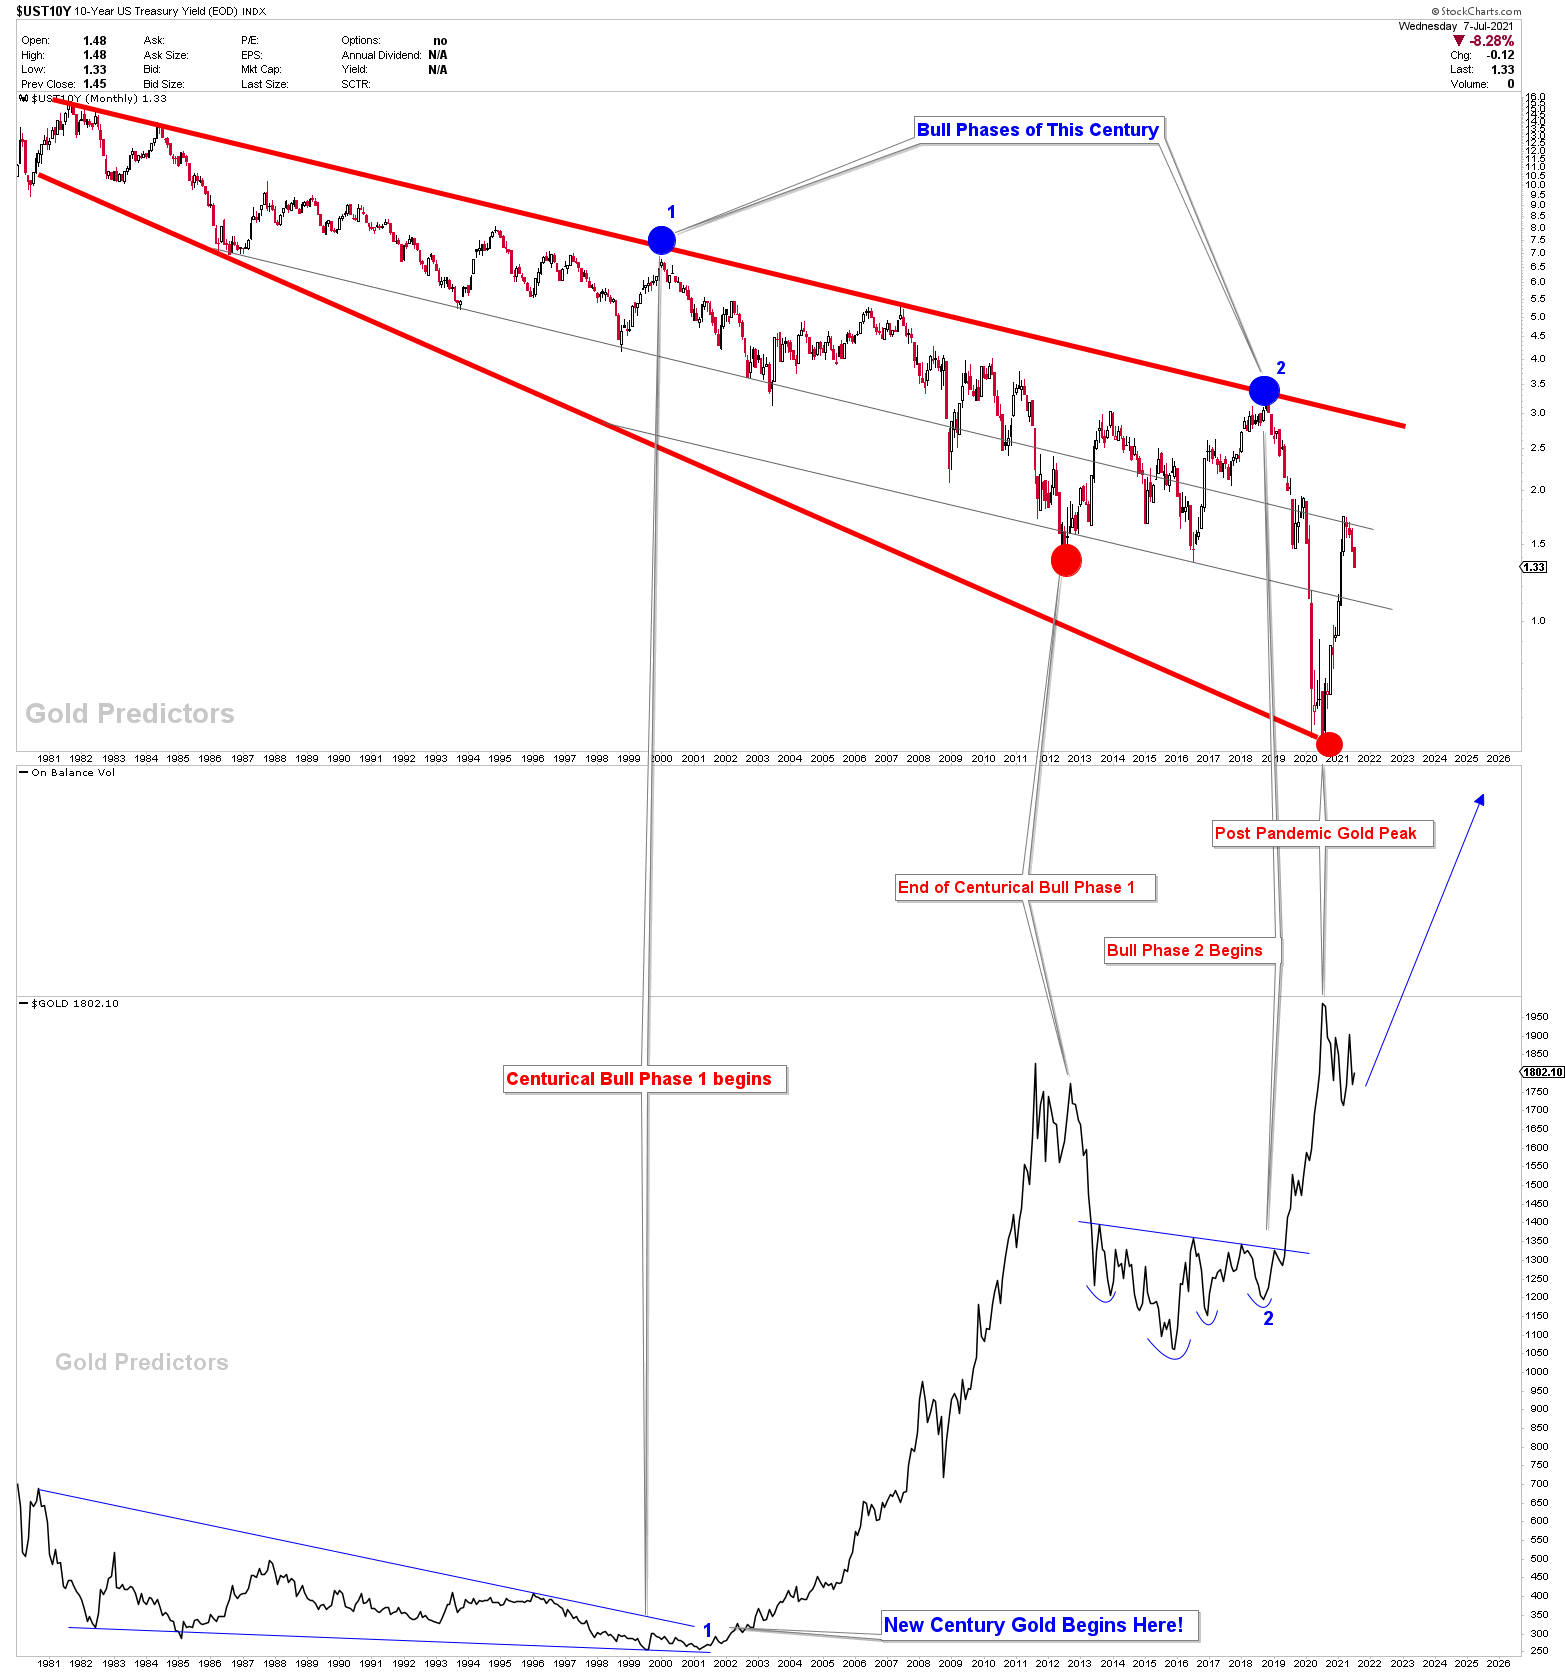 correlation of gold and treasury yield